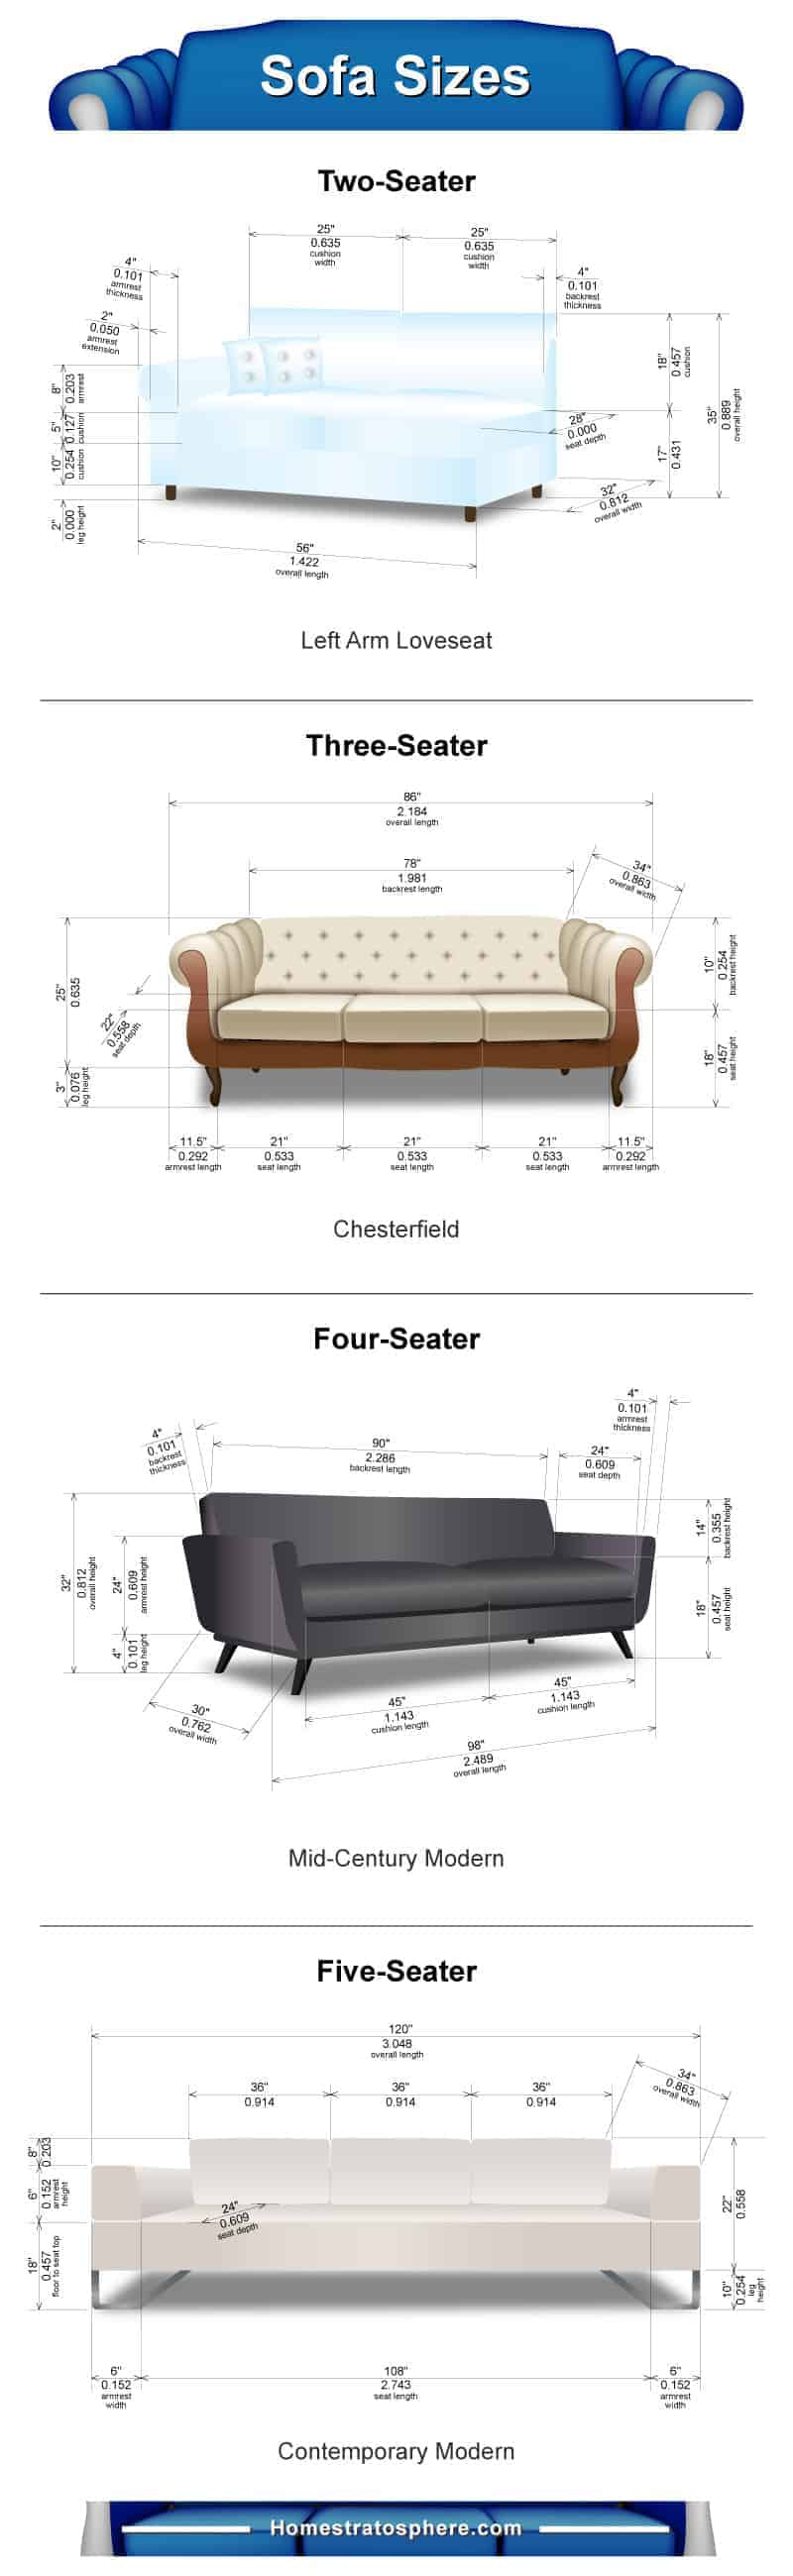 Delightful Diagrams Showing The Proper Couch Dimensions According To The Number Of  People It Seats.